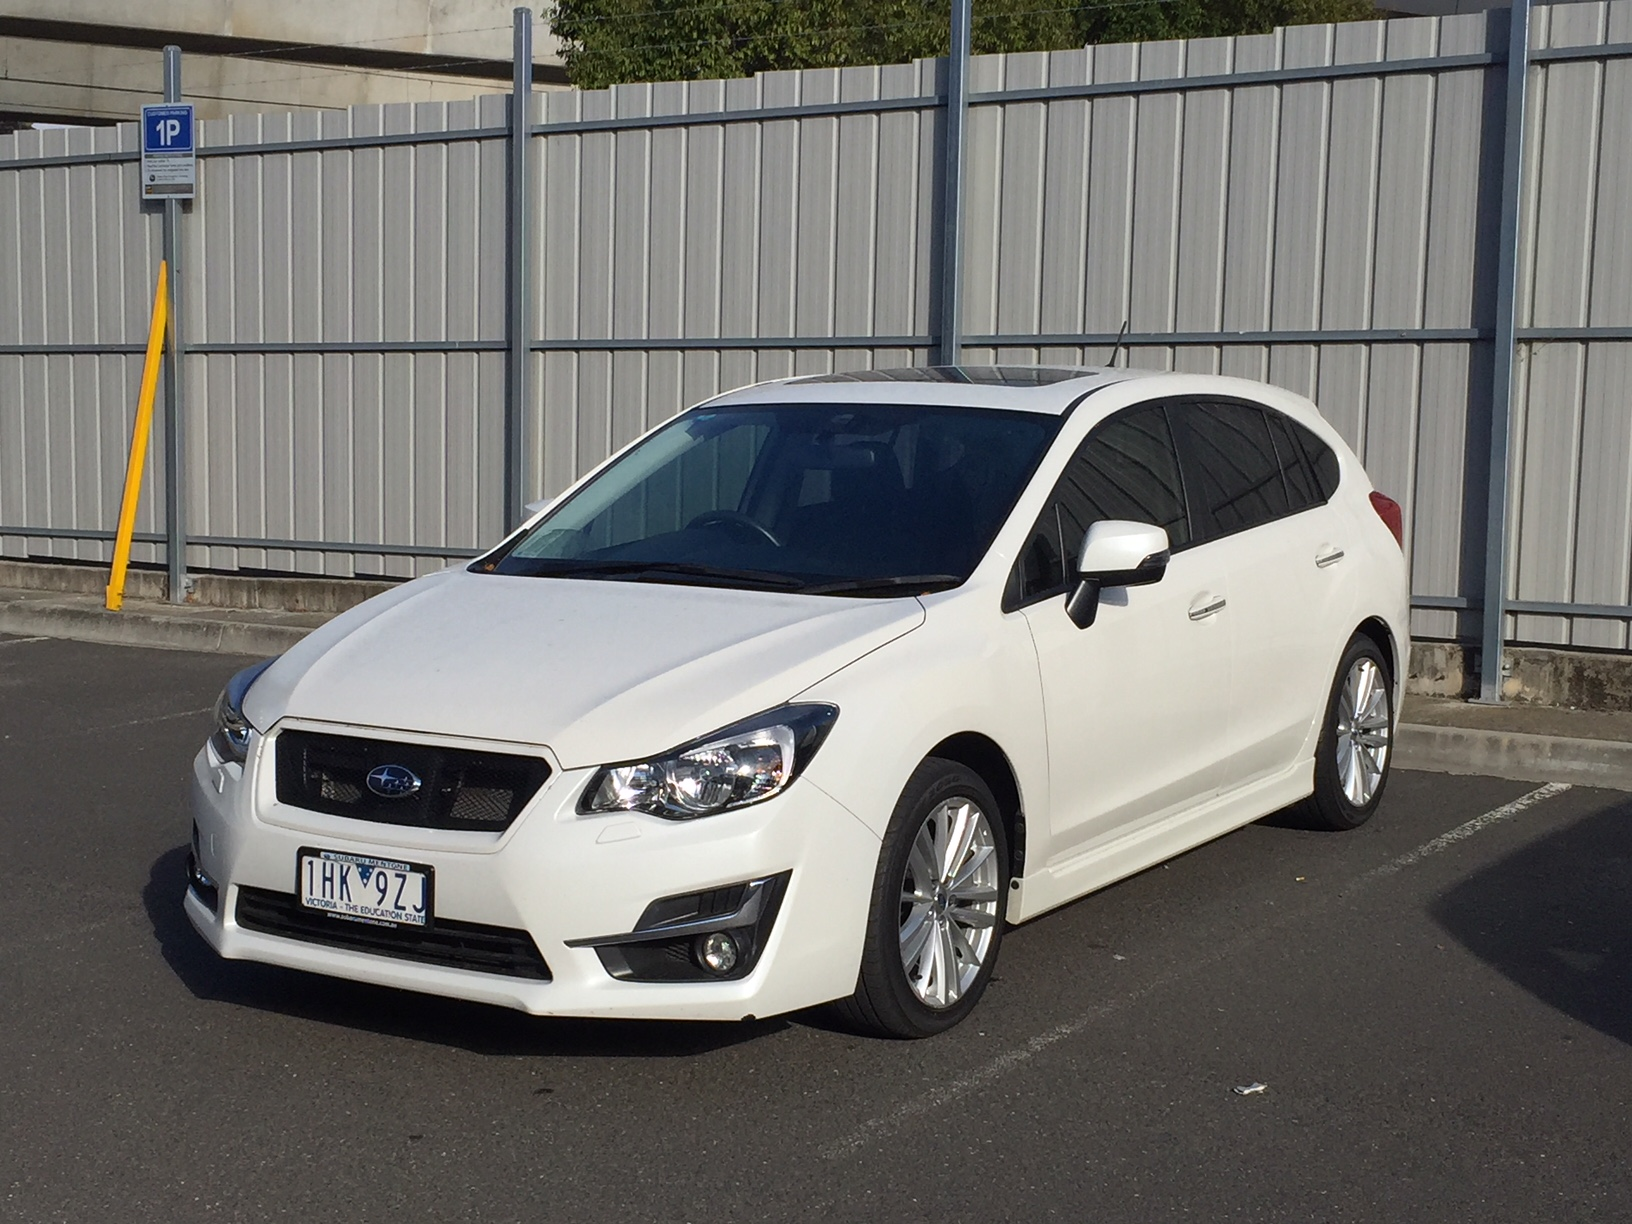 Picture of Sean's 2016 Subaru Impreza